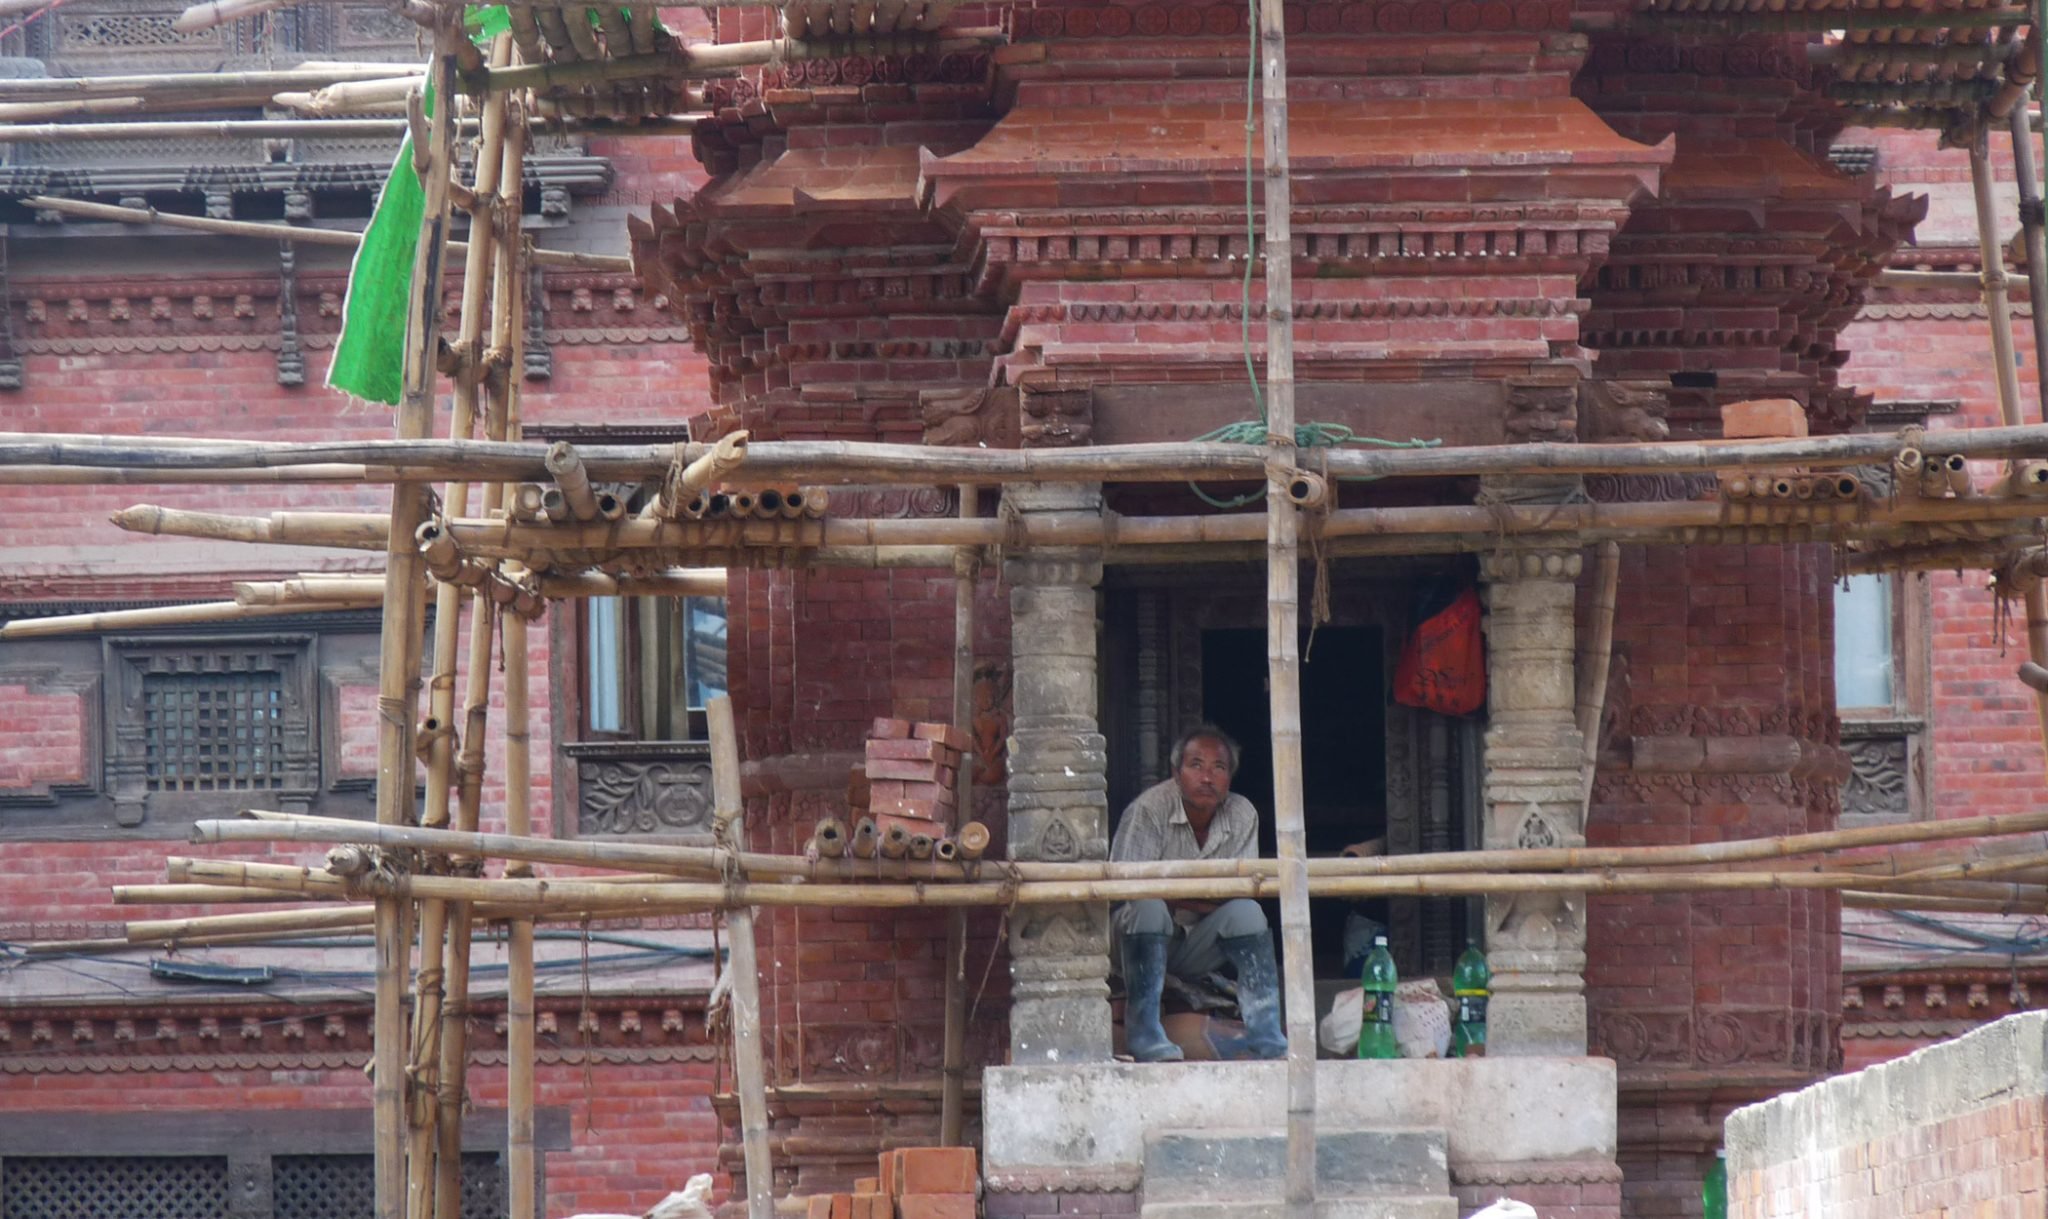 A man sits in the damaged entrance to a temple.